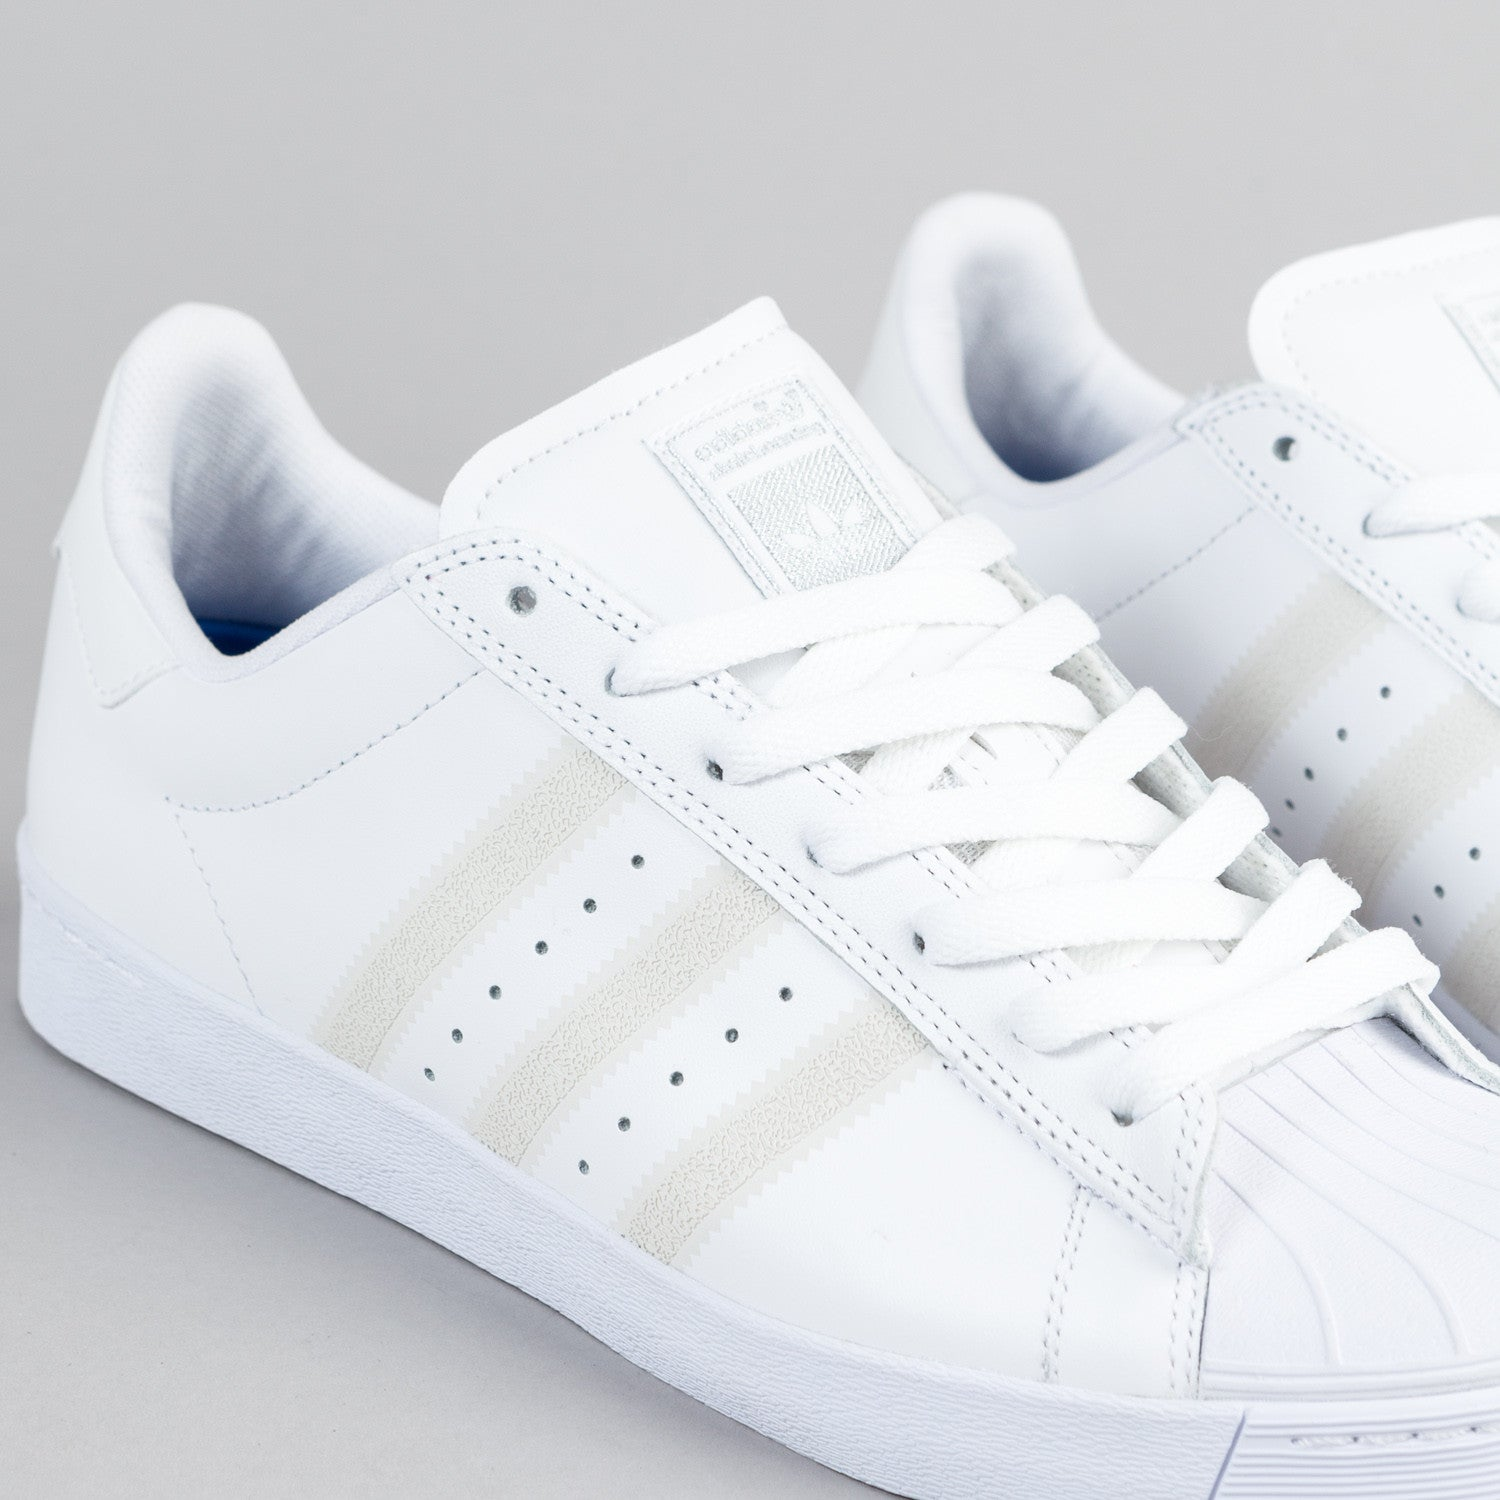 Adidas Superstar Vulc Adv White Black Unisex Cheap Superstar